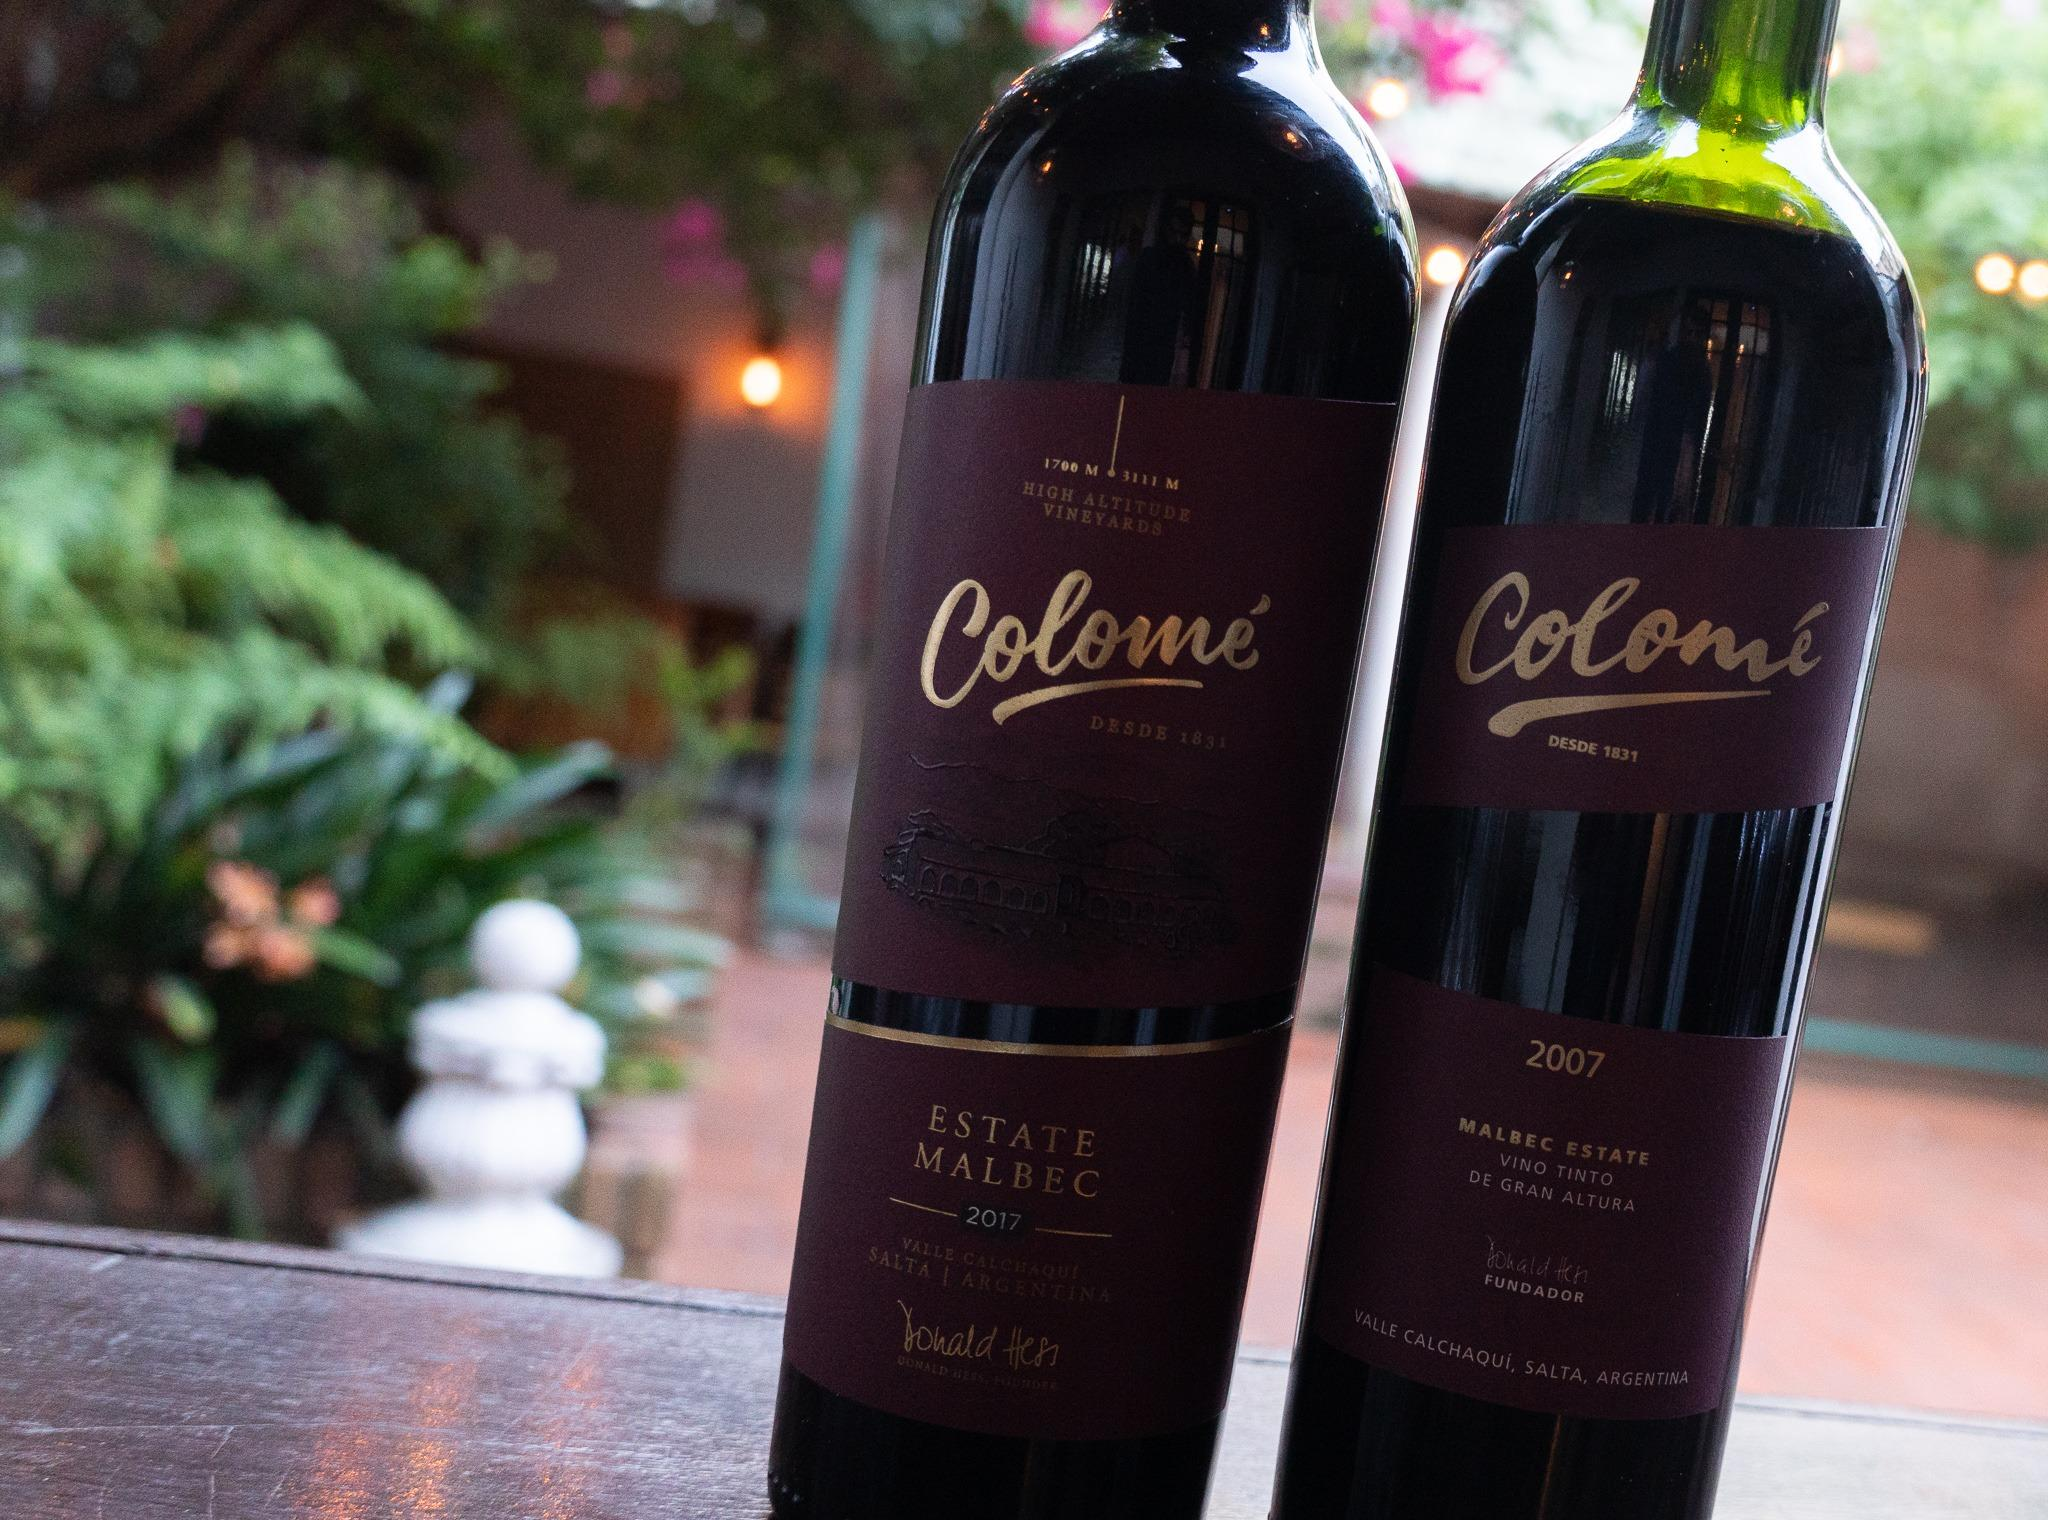 Colomé Estate 2017 y Colomé Estate 2007